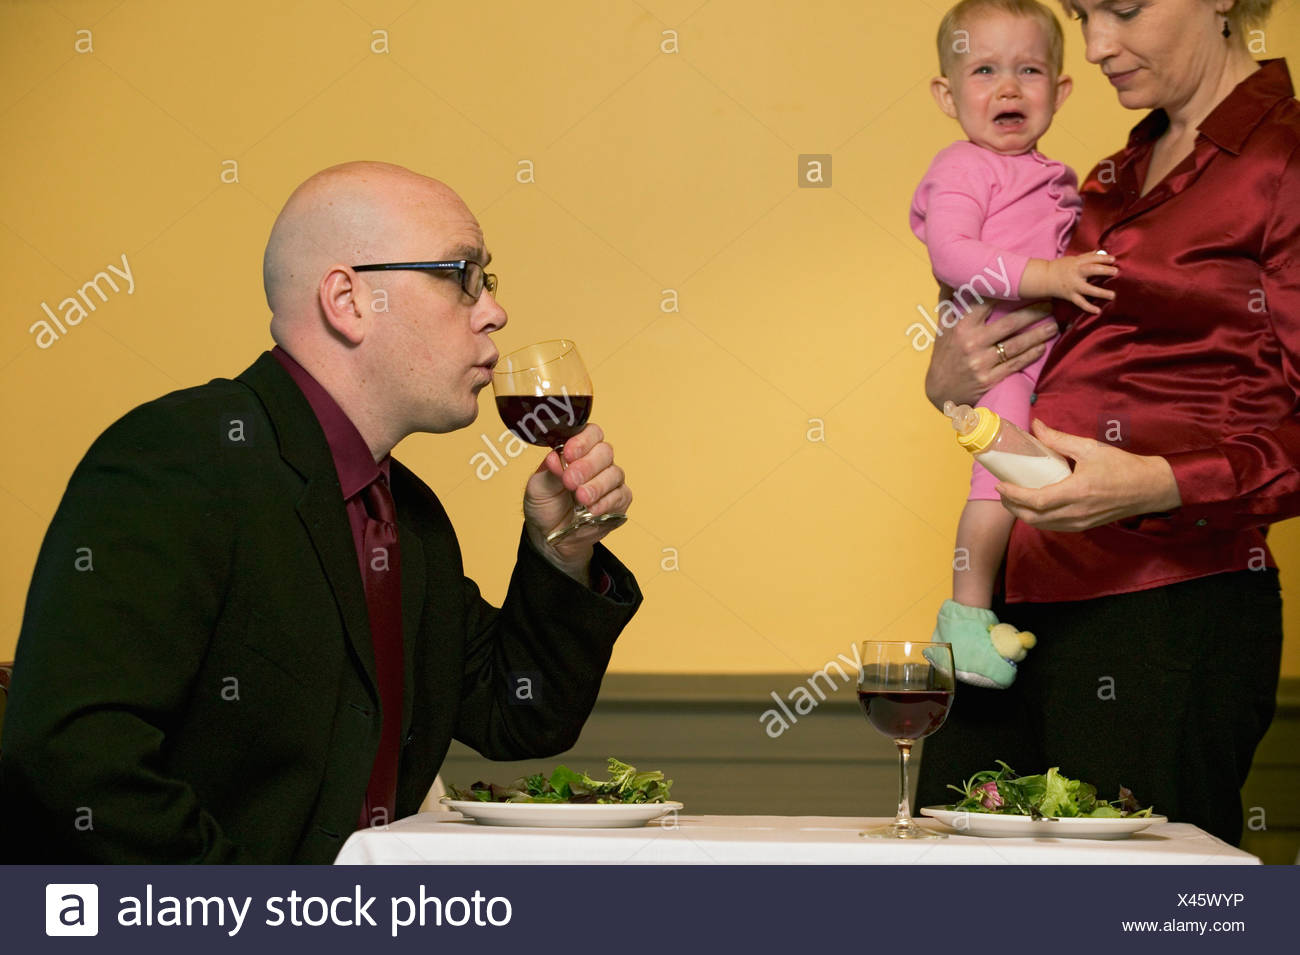 Mother holding crying baby as husband sips wine - Stock Image